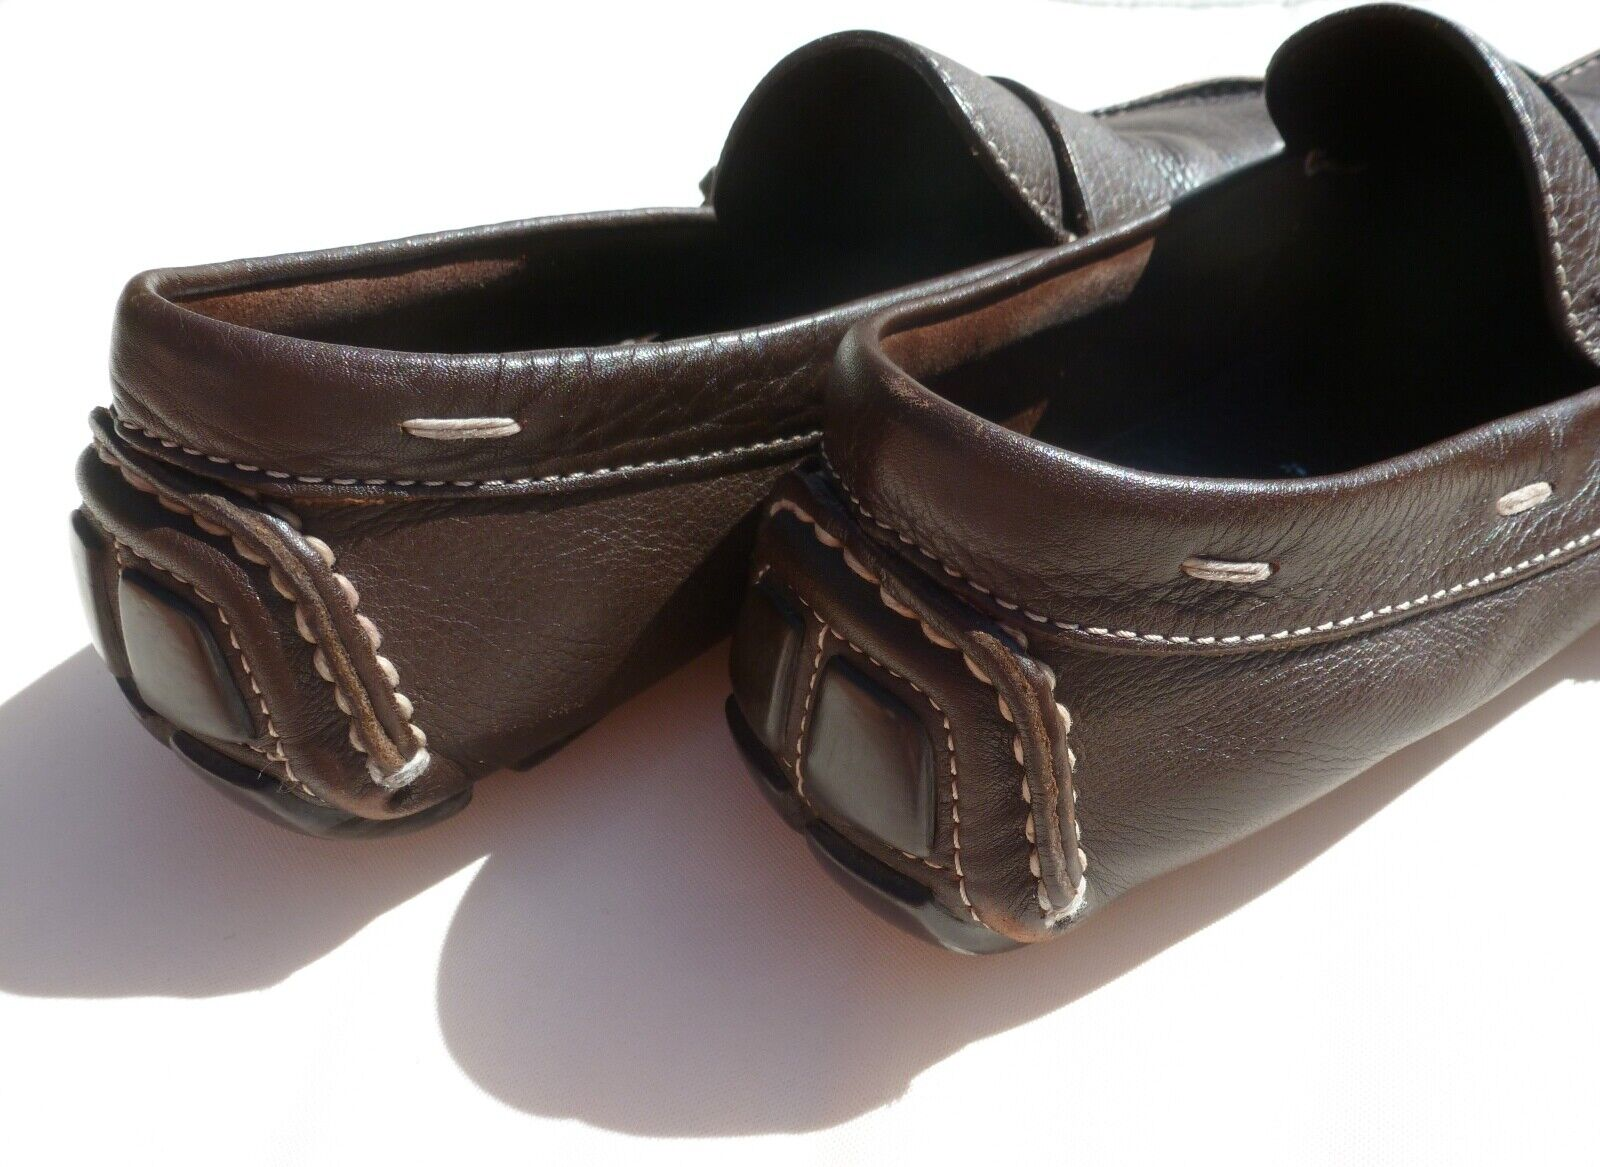 PRADA Men's shoes Brown Leather Loafers UK 9.5 EU 43